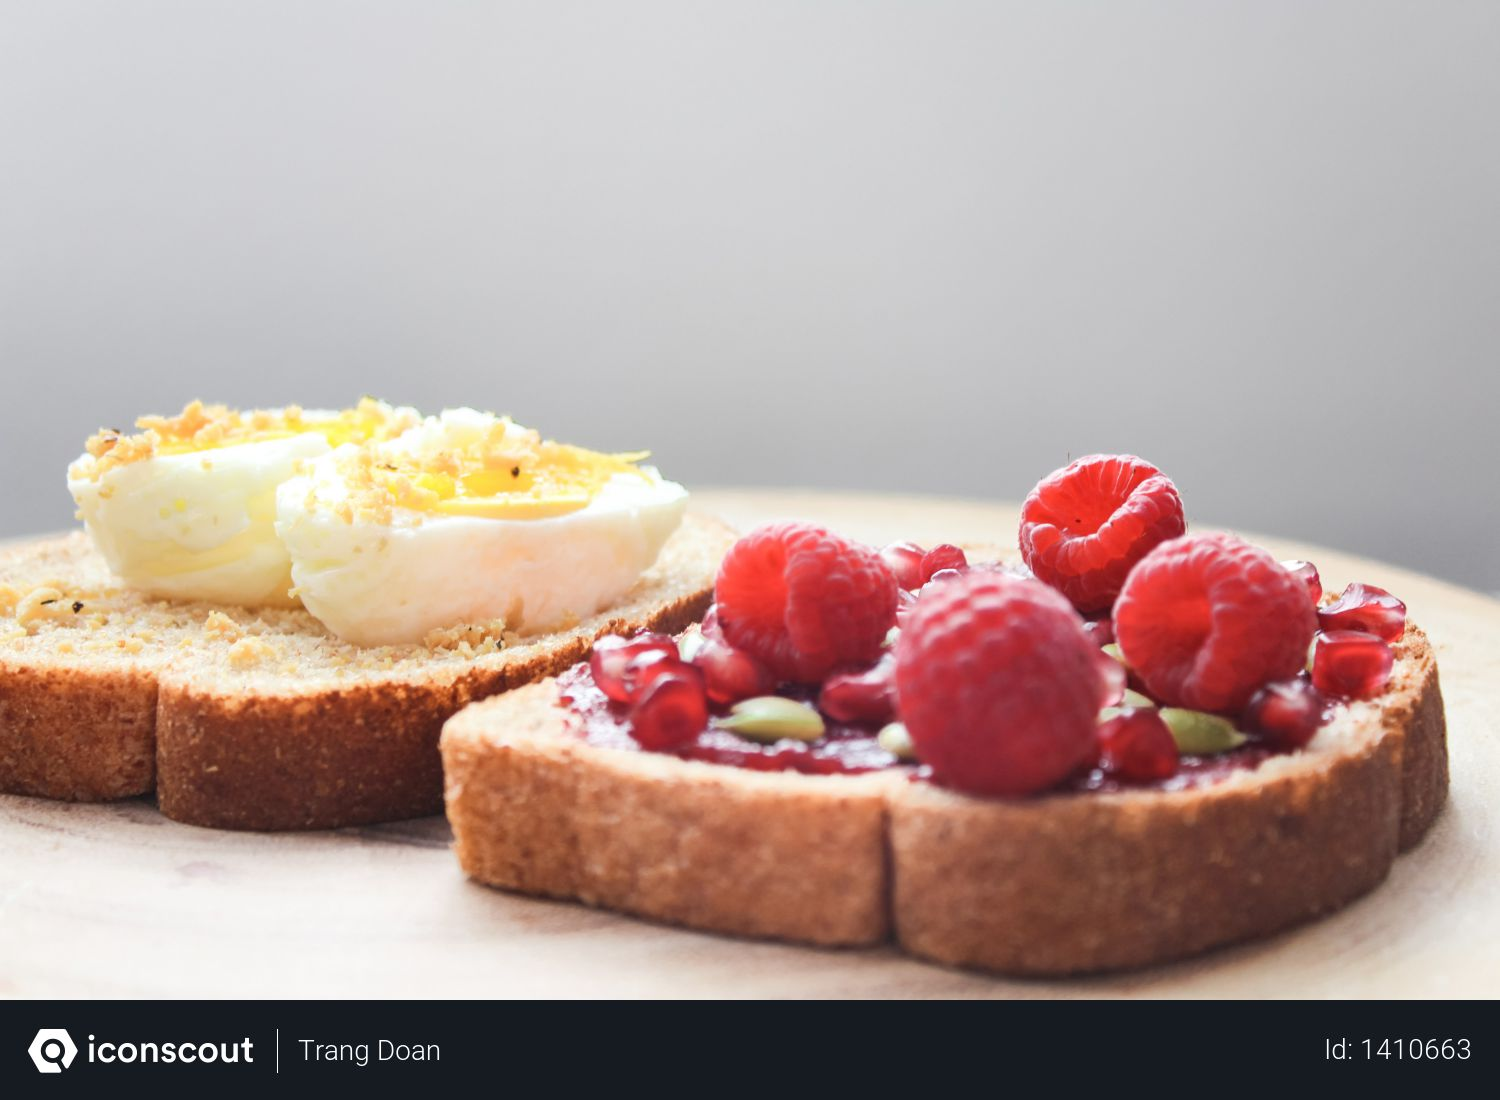 Two Boiled Egg and Raspberries on Loaf Bread Photo